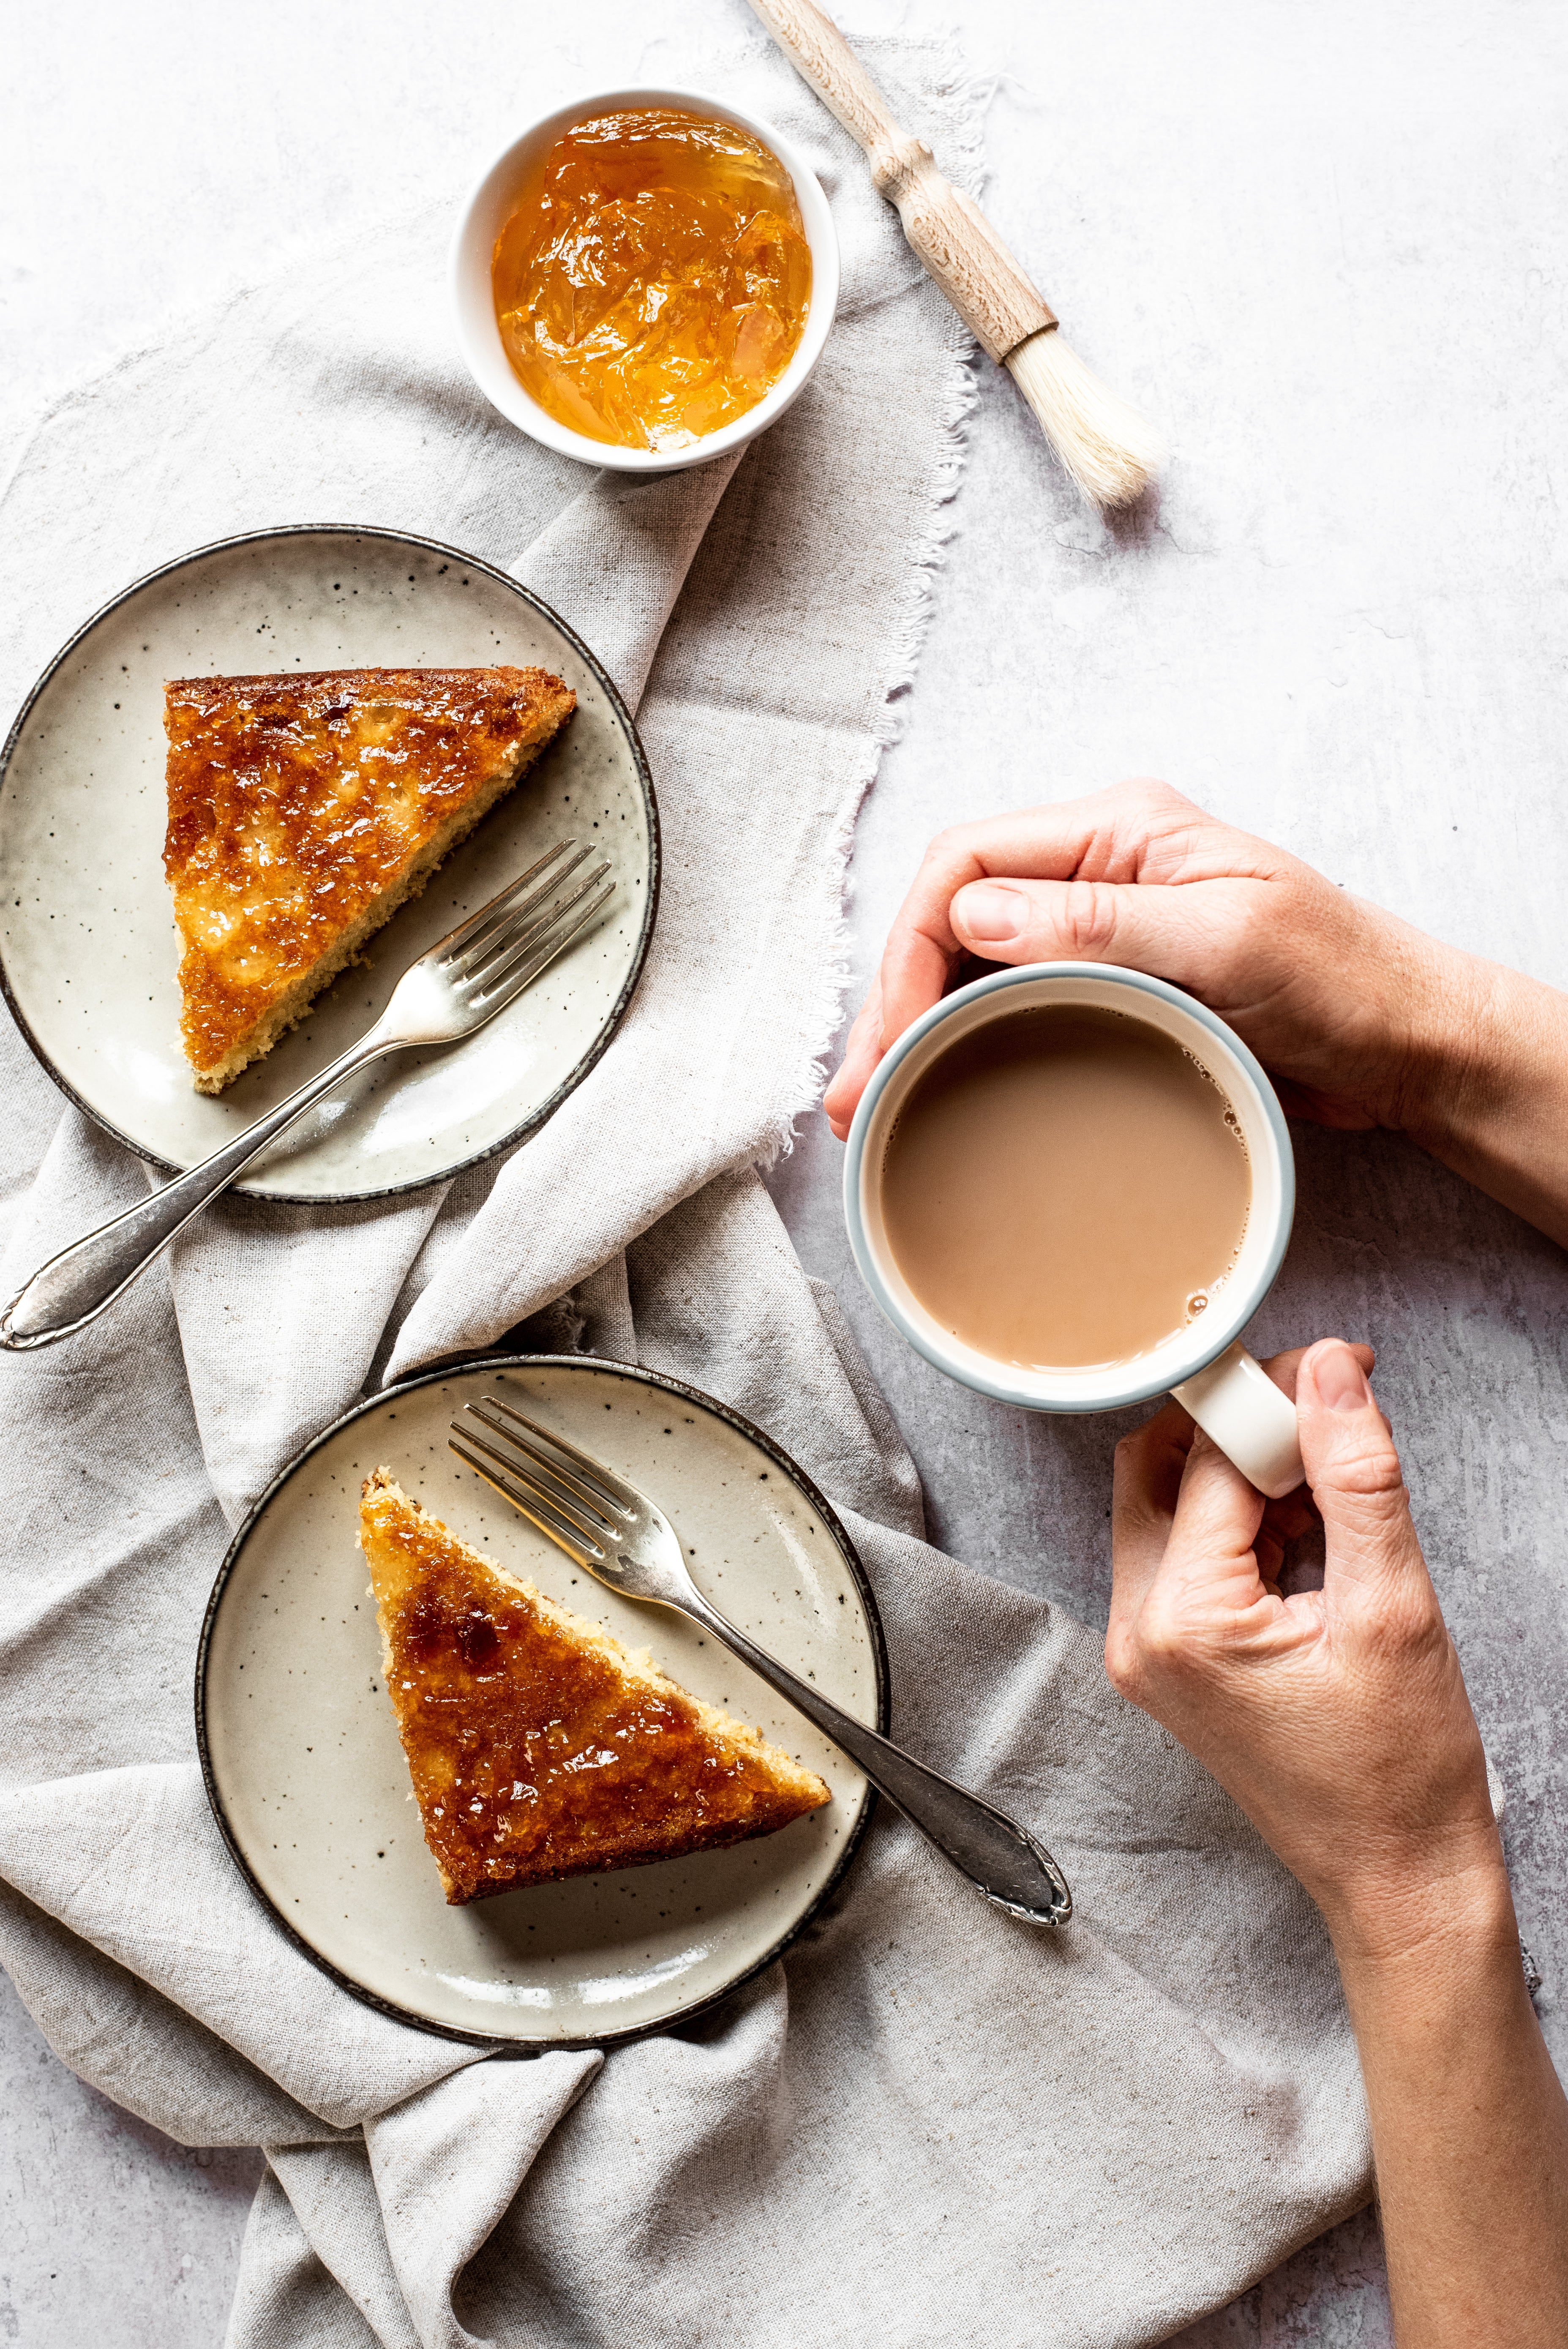 Top view of Marmalade Traybake, served on plates with forks. Plates are lay on top of linen cloths, next to hands holding a mug of tea